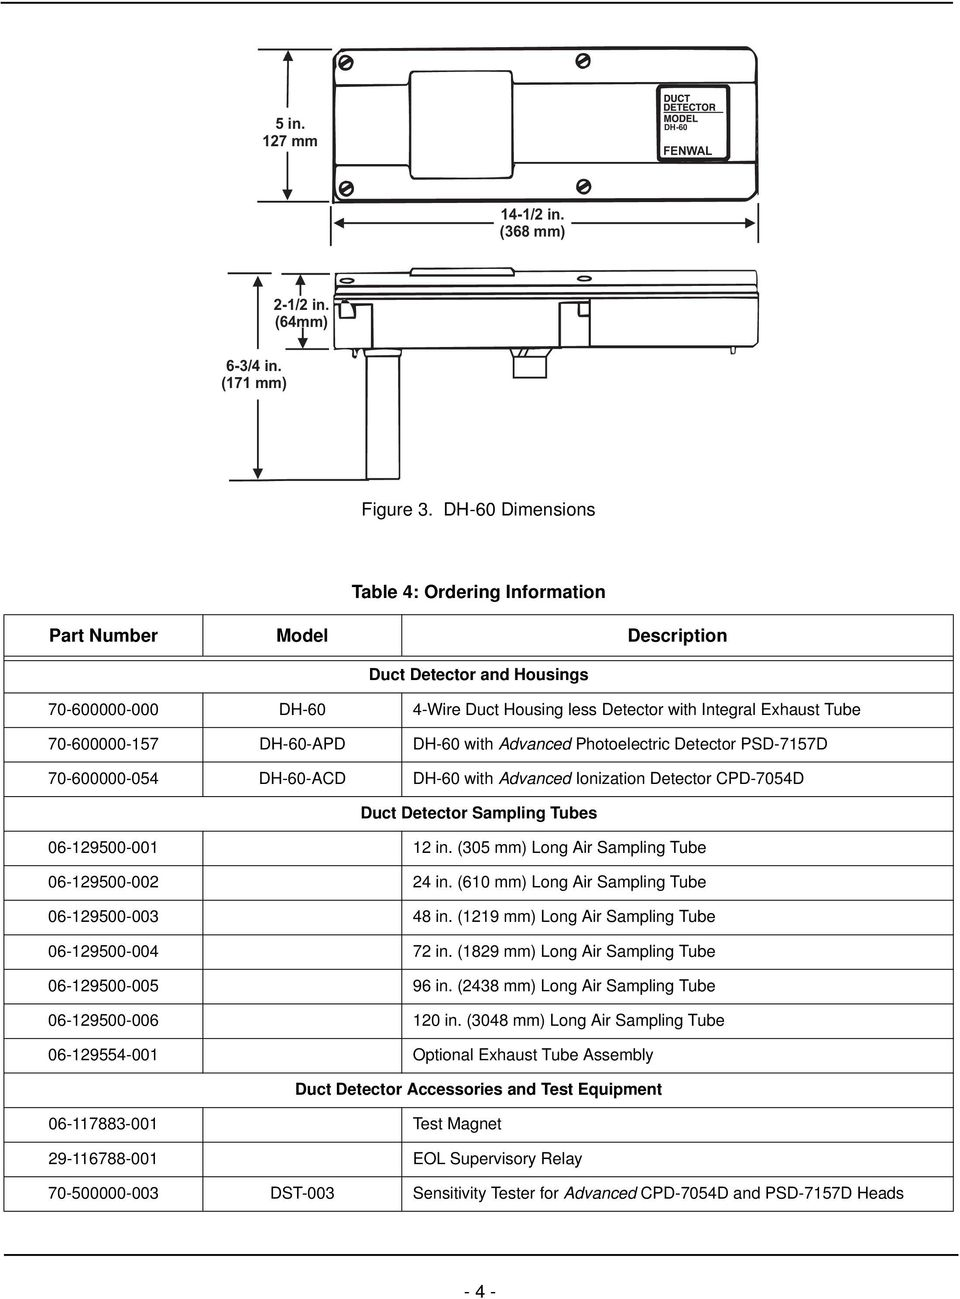 Fenwal Dh 60 Wiring Diagram Electrical Diagrams Burnham Boiler 4 Wire Air Duct Smoke Detector Protection Systems A Utc Fire